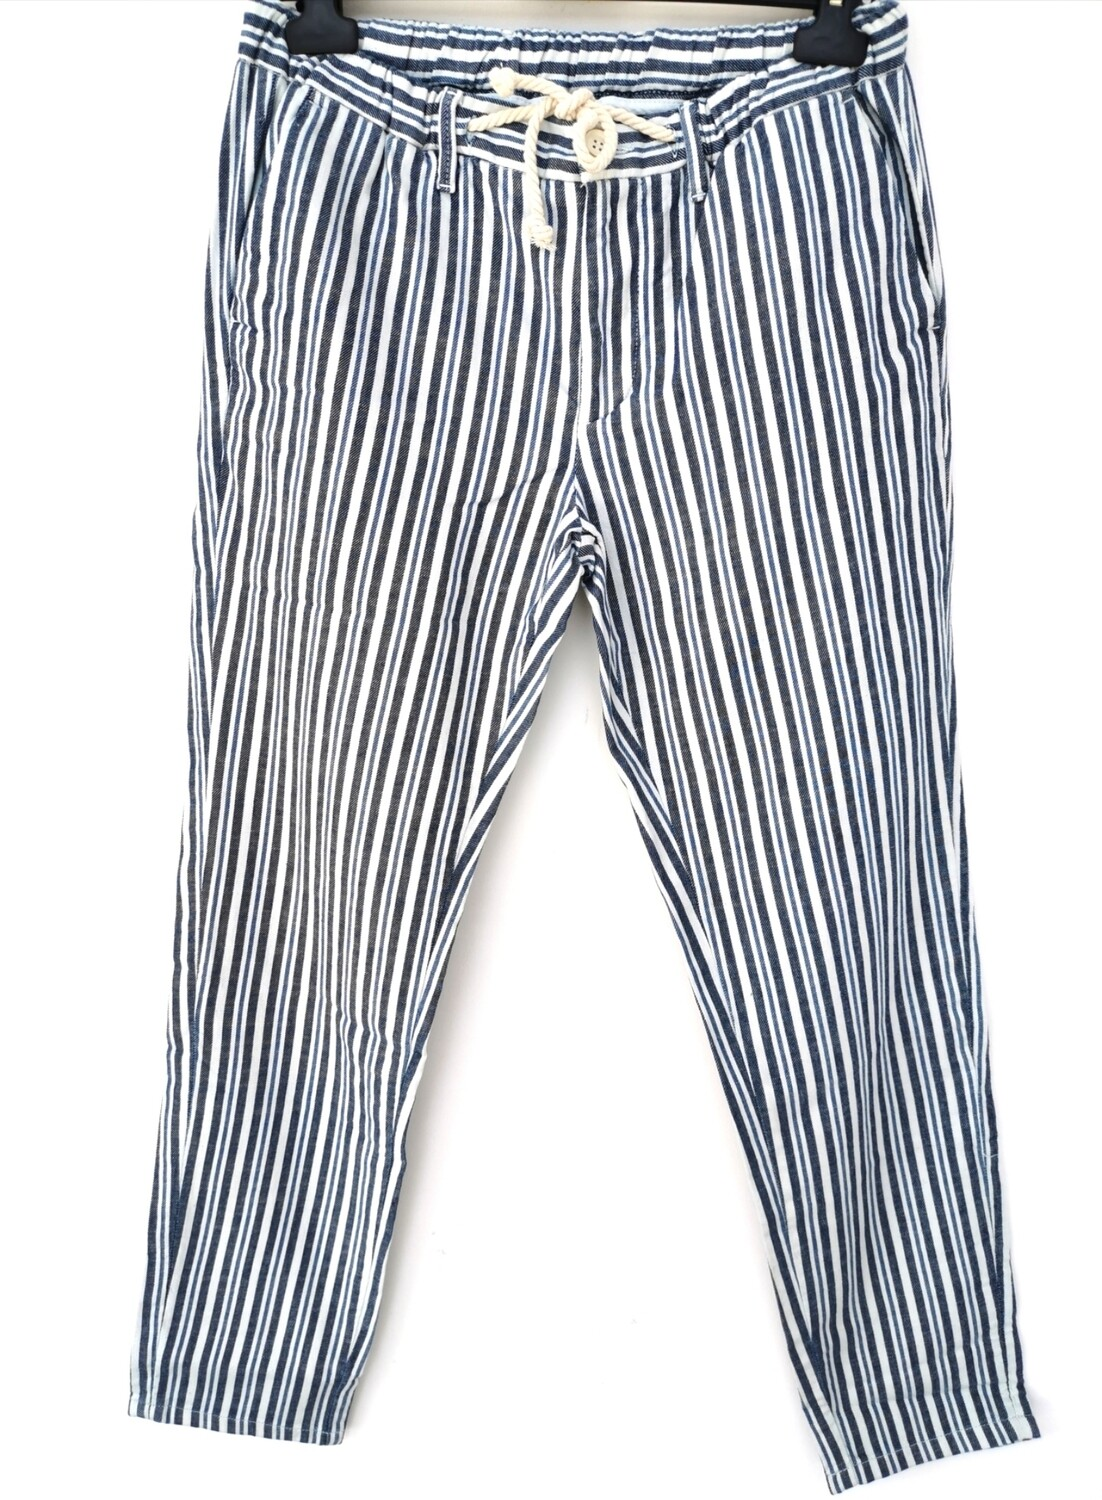 Striped men's pants